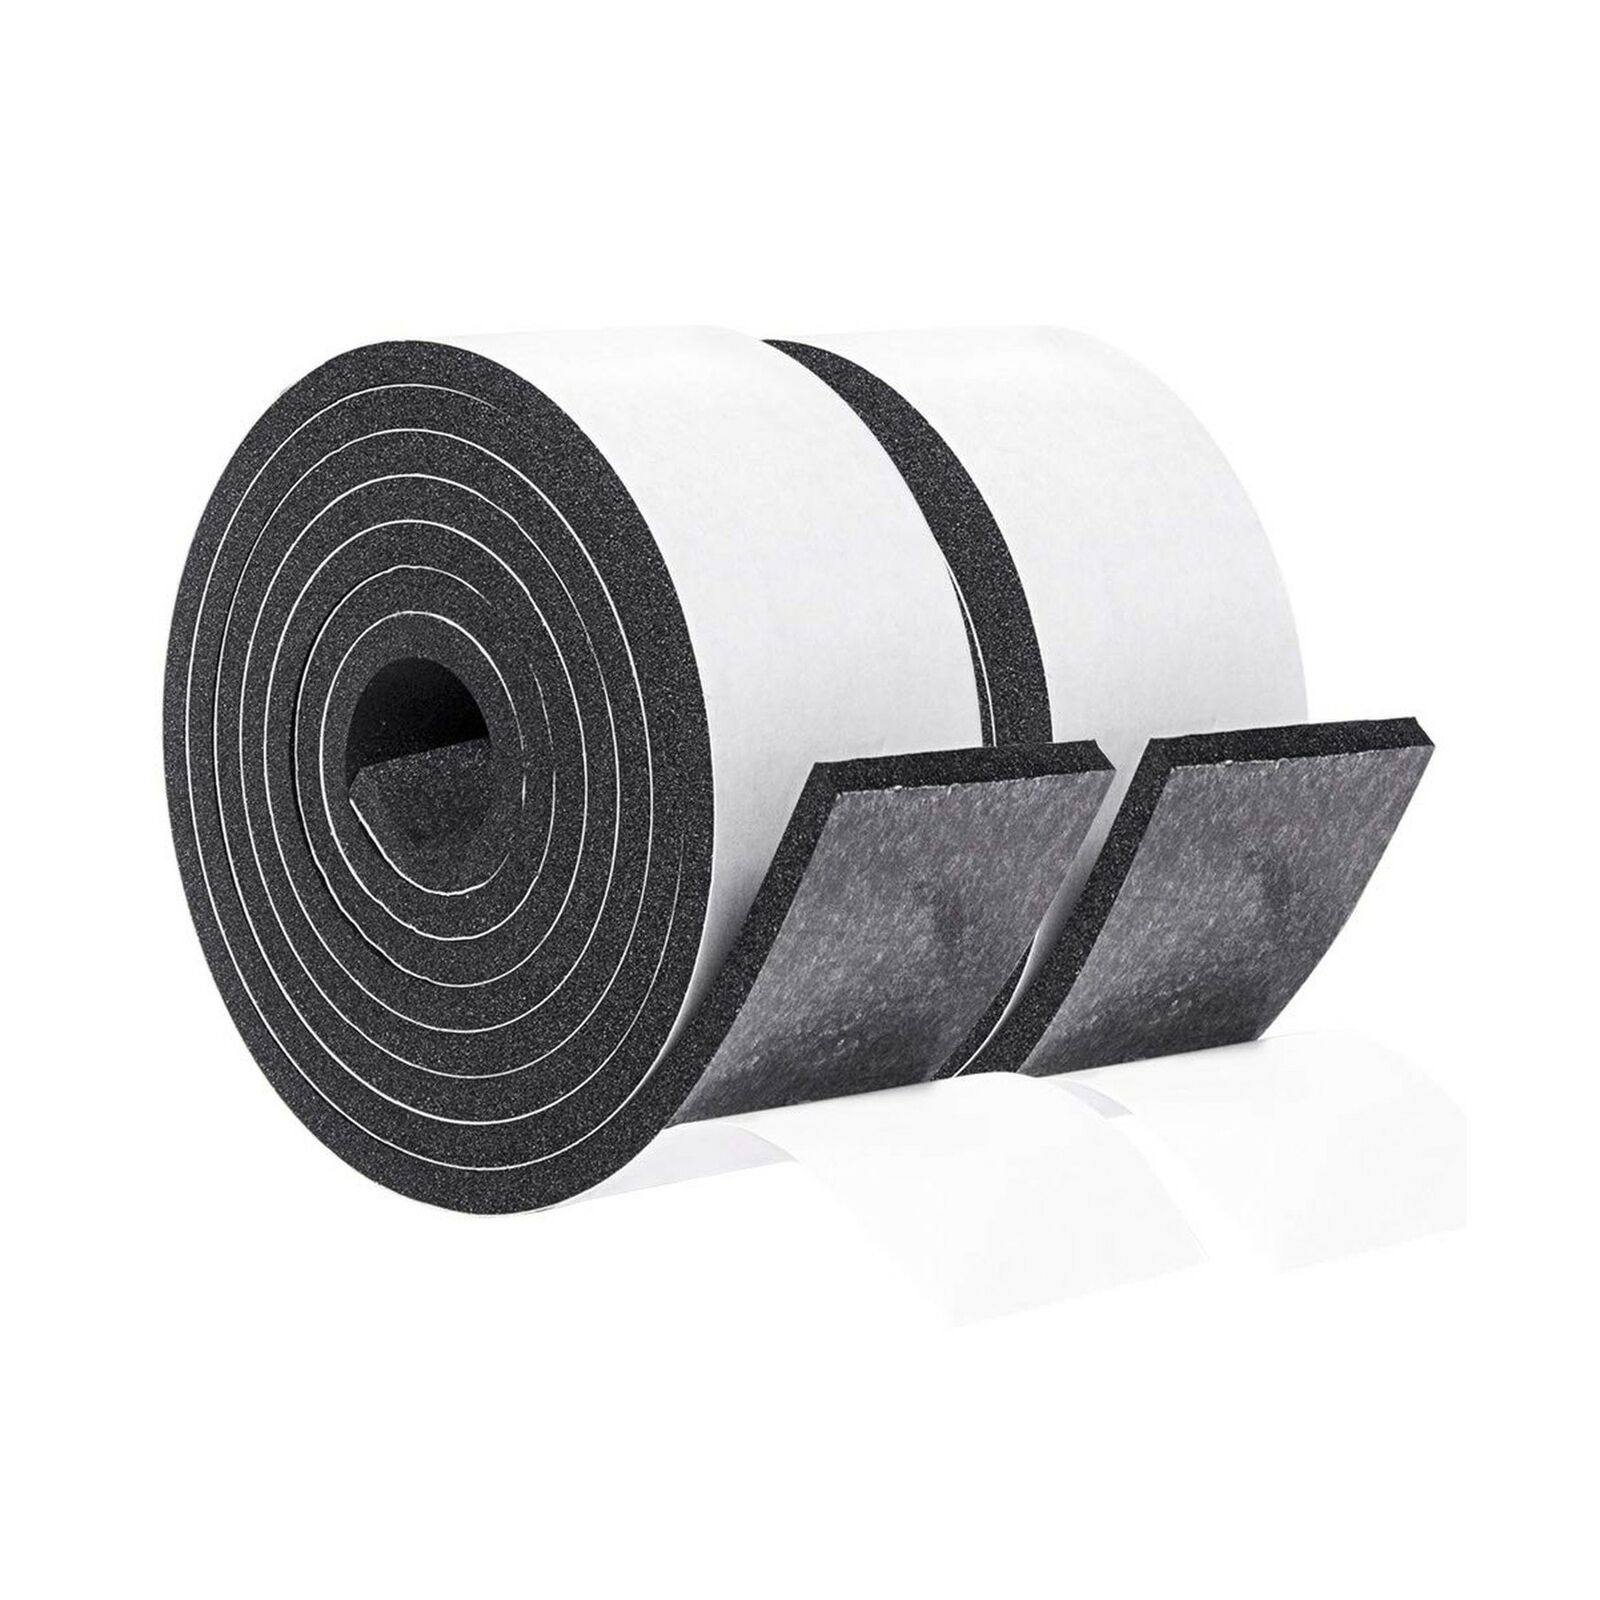 6 Ft Long X 6 Inch Wide X 1//16 Inch Thick Gourd Self Adhesive Weather Stripping Non-Slip Insulation Neoprene Rubber Tape